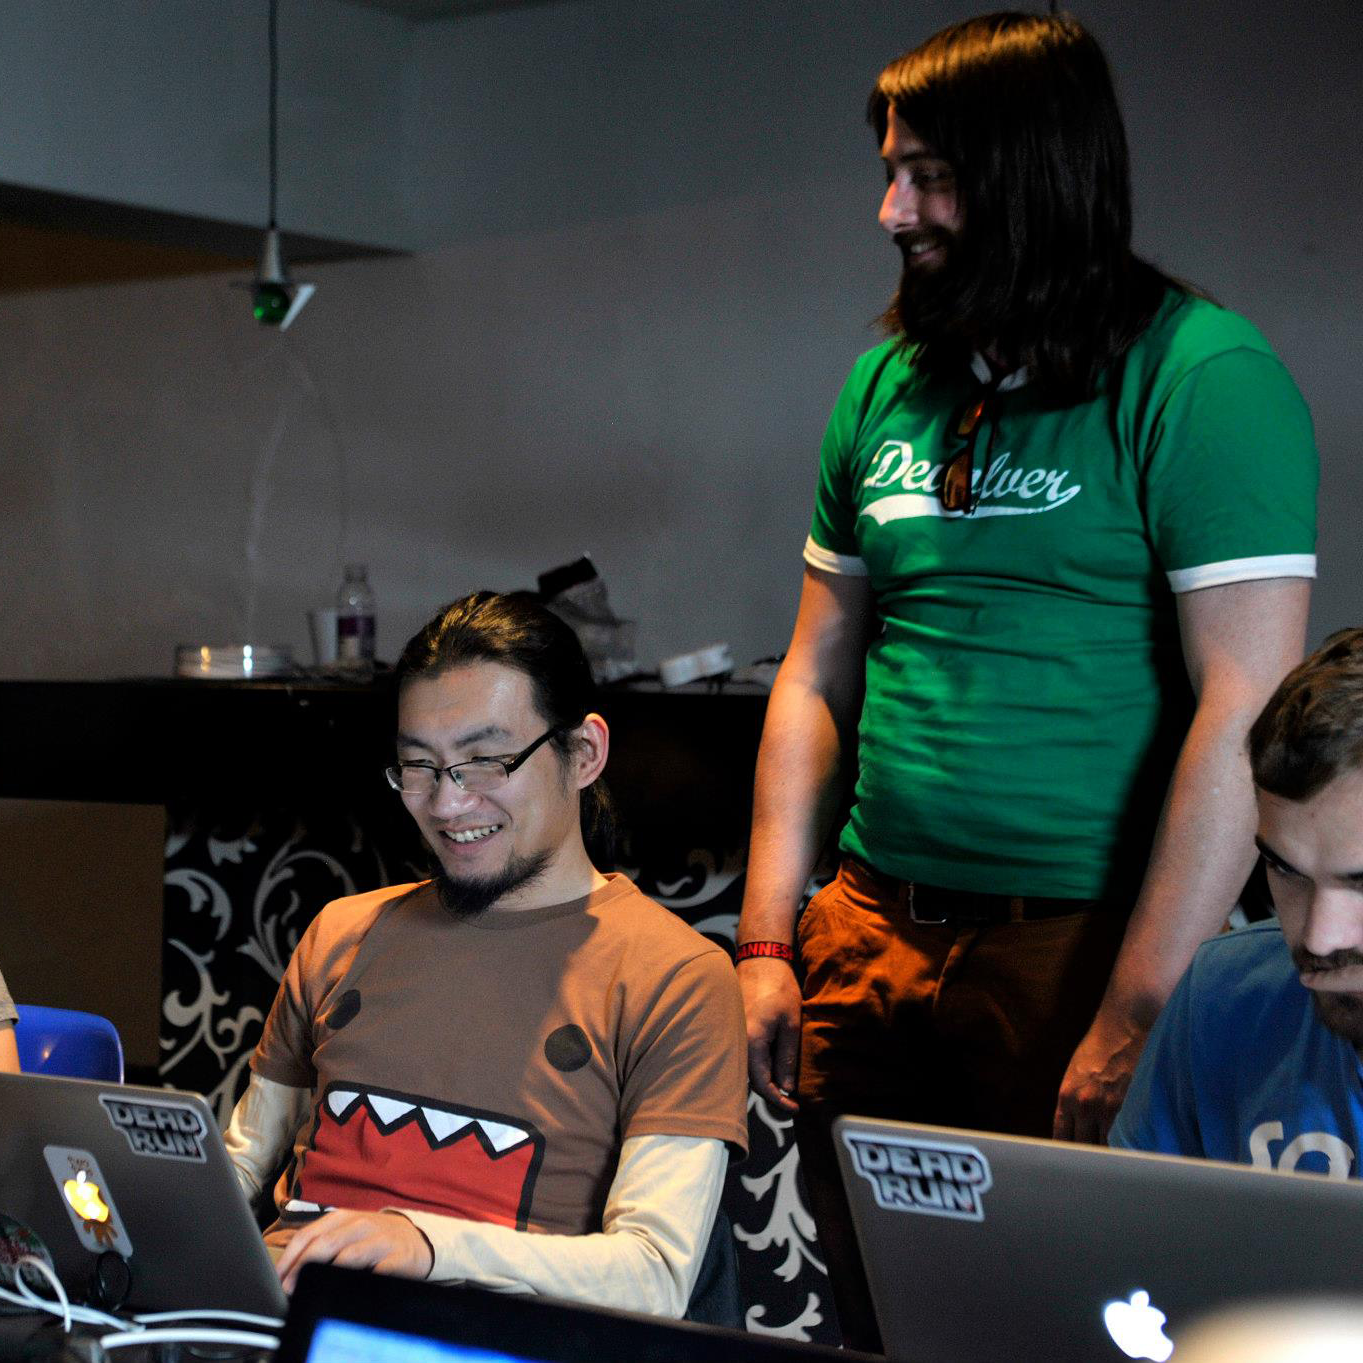 A MAZE 2014, Tu doing a game jam with the theme Shongololo. Evan Greenwood of Free Lives (standing), Loet Jansen Van Rensburg, Twoplus Games (sitting)